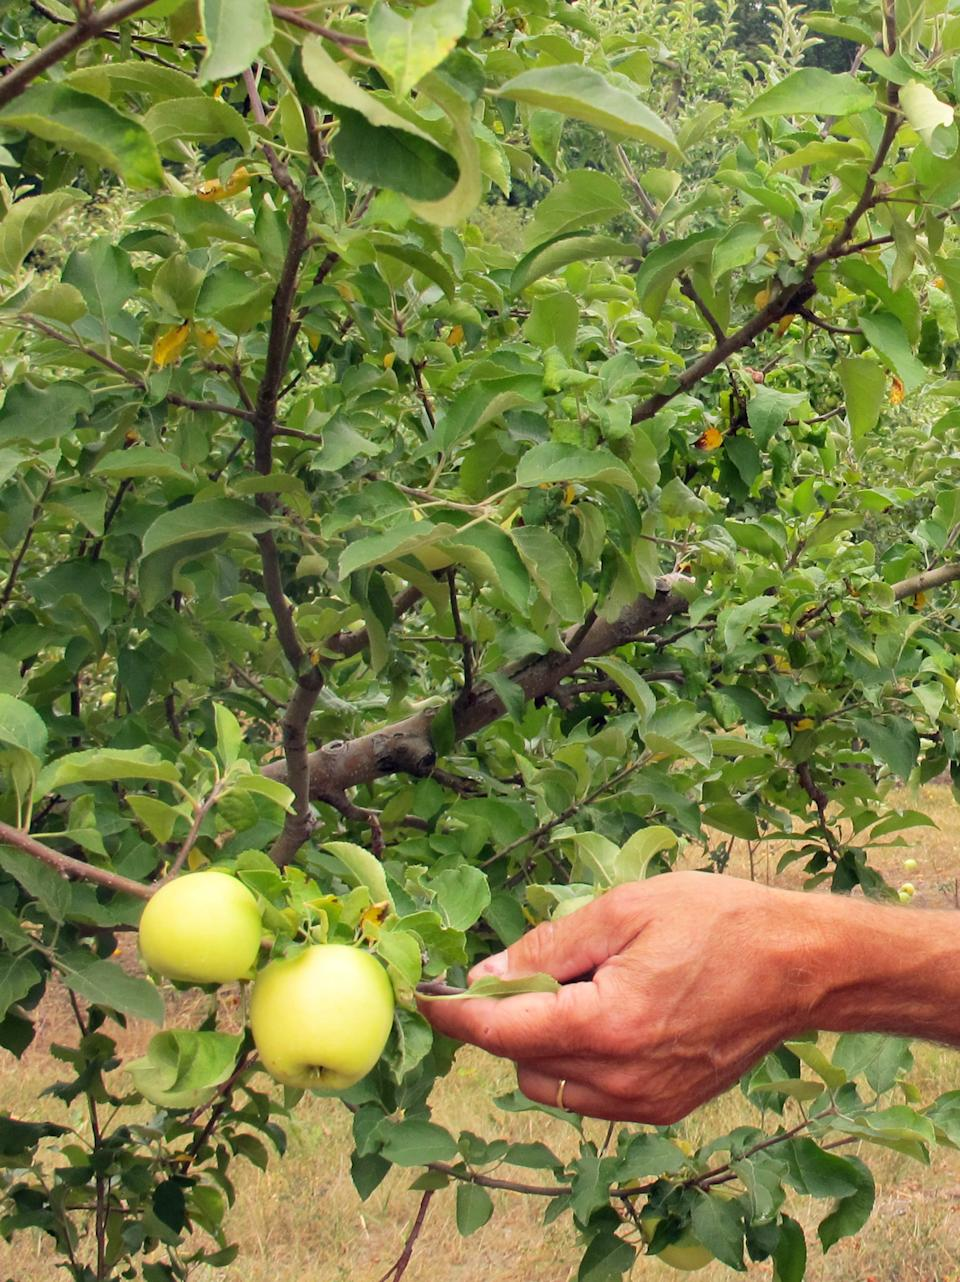 In an Aug. 13, 2012 photo Alan Spinniken examines Early Gold apples in his orchard near Suttons Bay, Mich. The apple harvest has begun early across the Great Lakes region because a rare spring thaw caused trees to bud sooner than usual. (AP Photo/John Flesher)